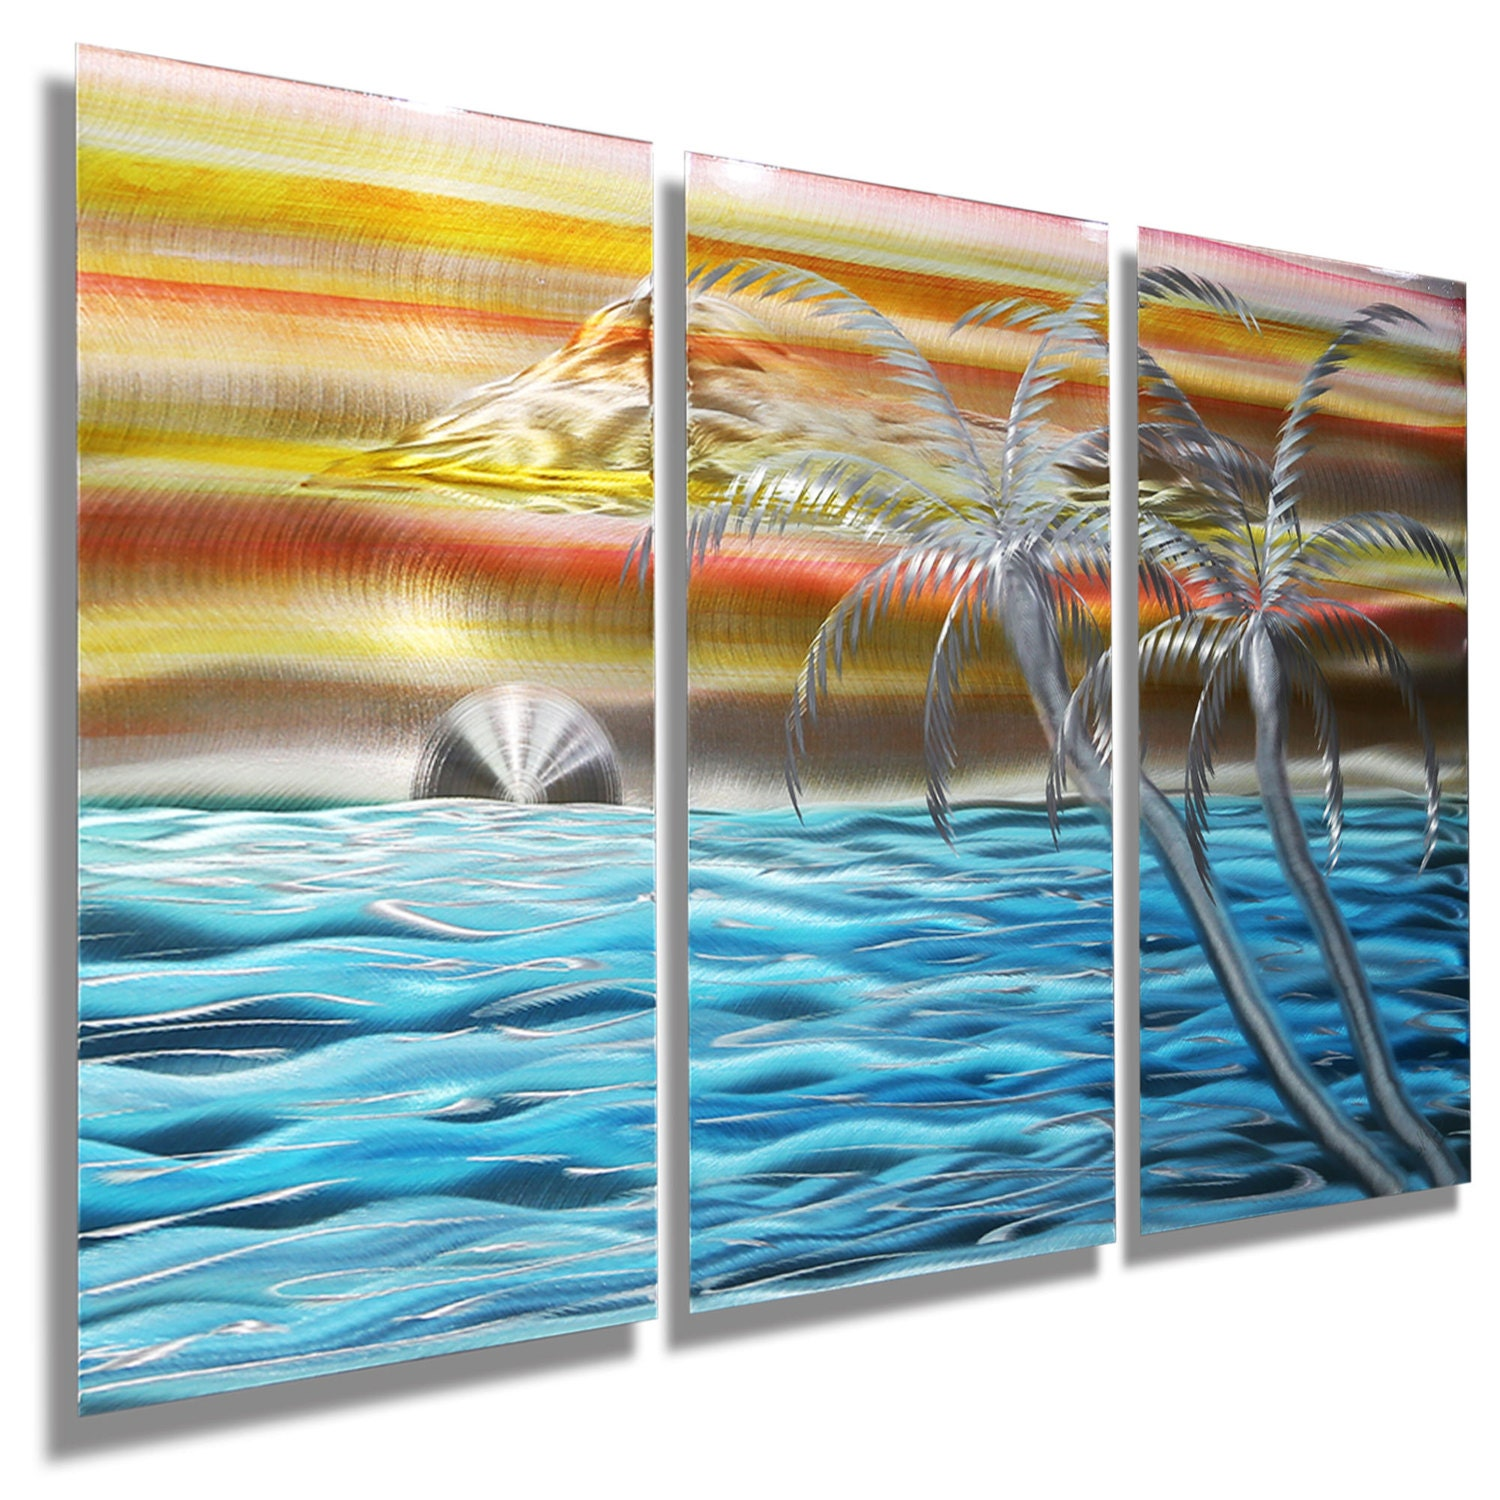 New nautical painting tropical metal wall art beach decor for Tropical metal wall art